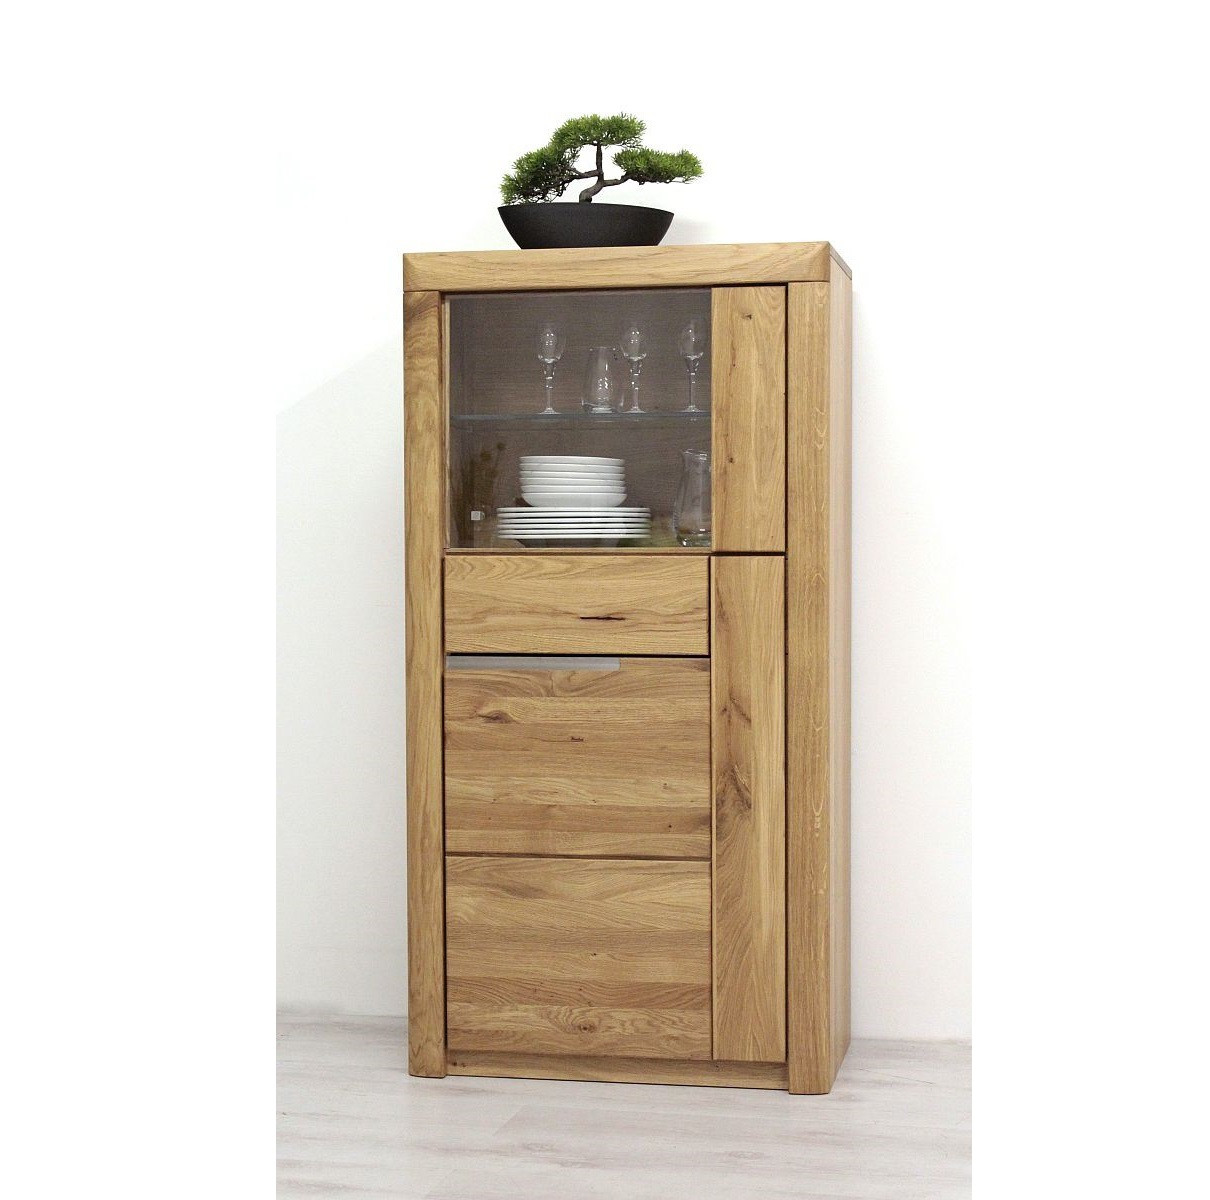 highboard-vitrine-solido-wildeiche-massiv-15-offen_2_.jpg